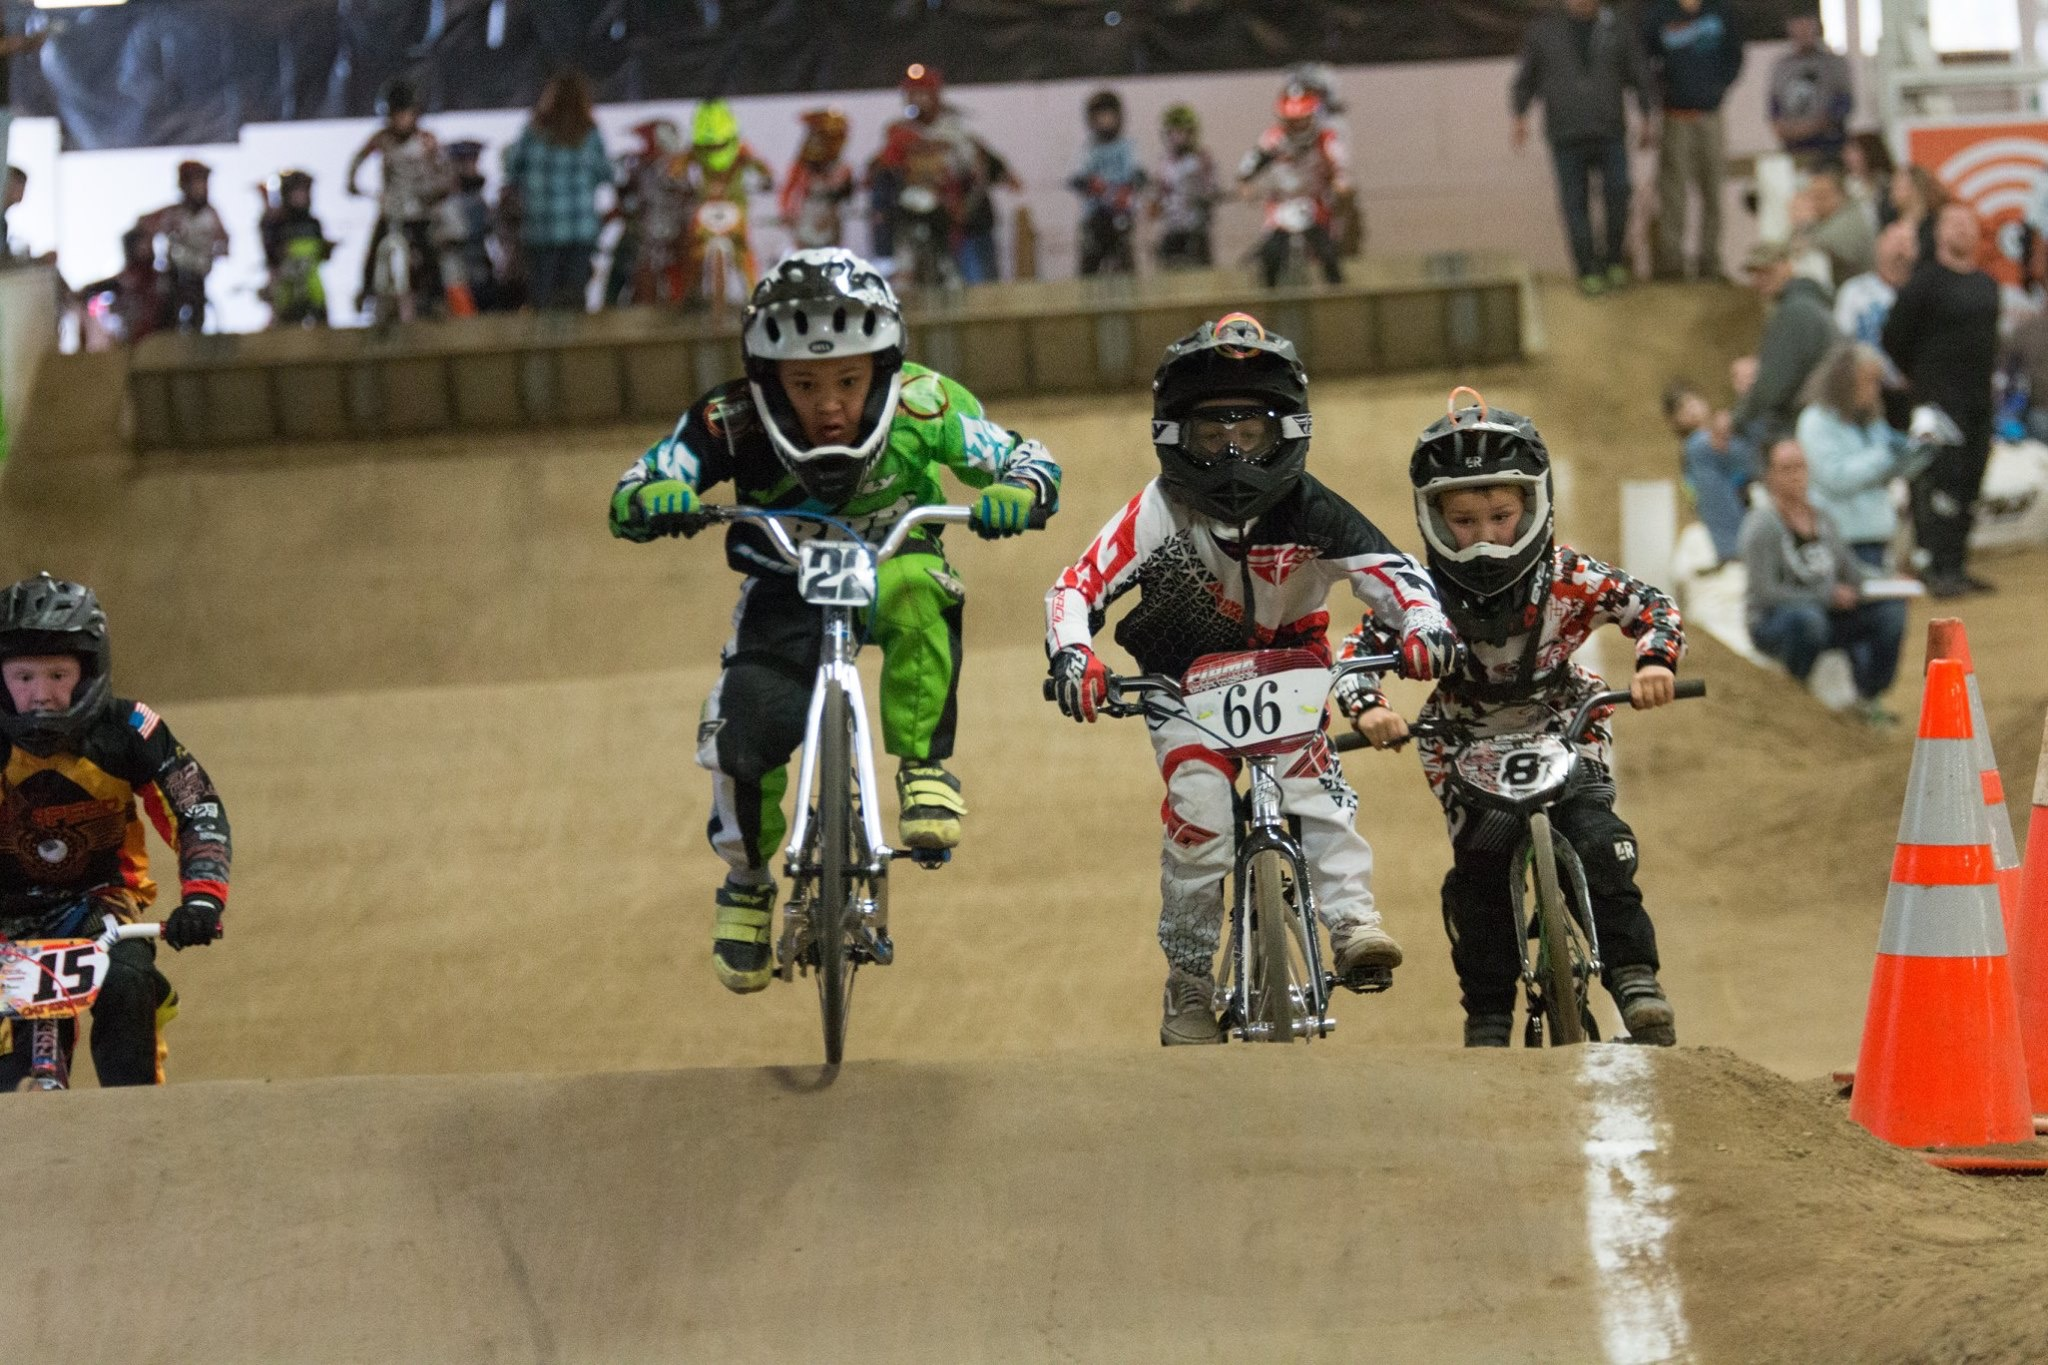 BMX bicycle racing